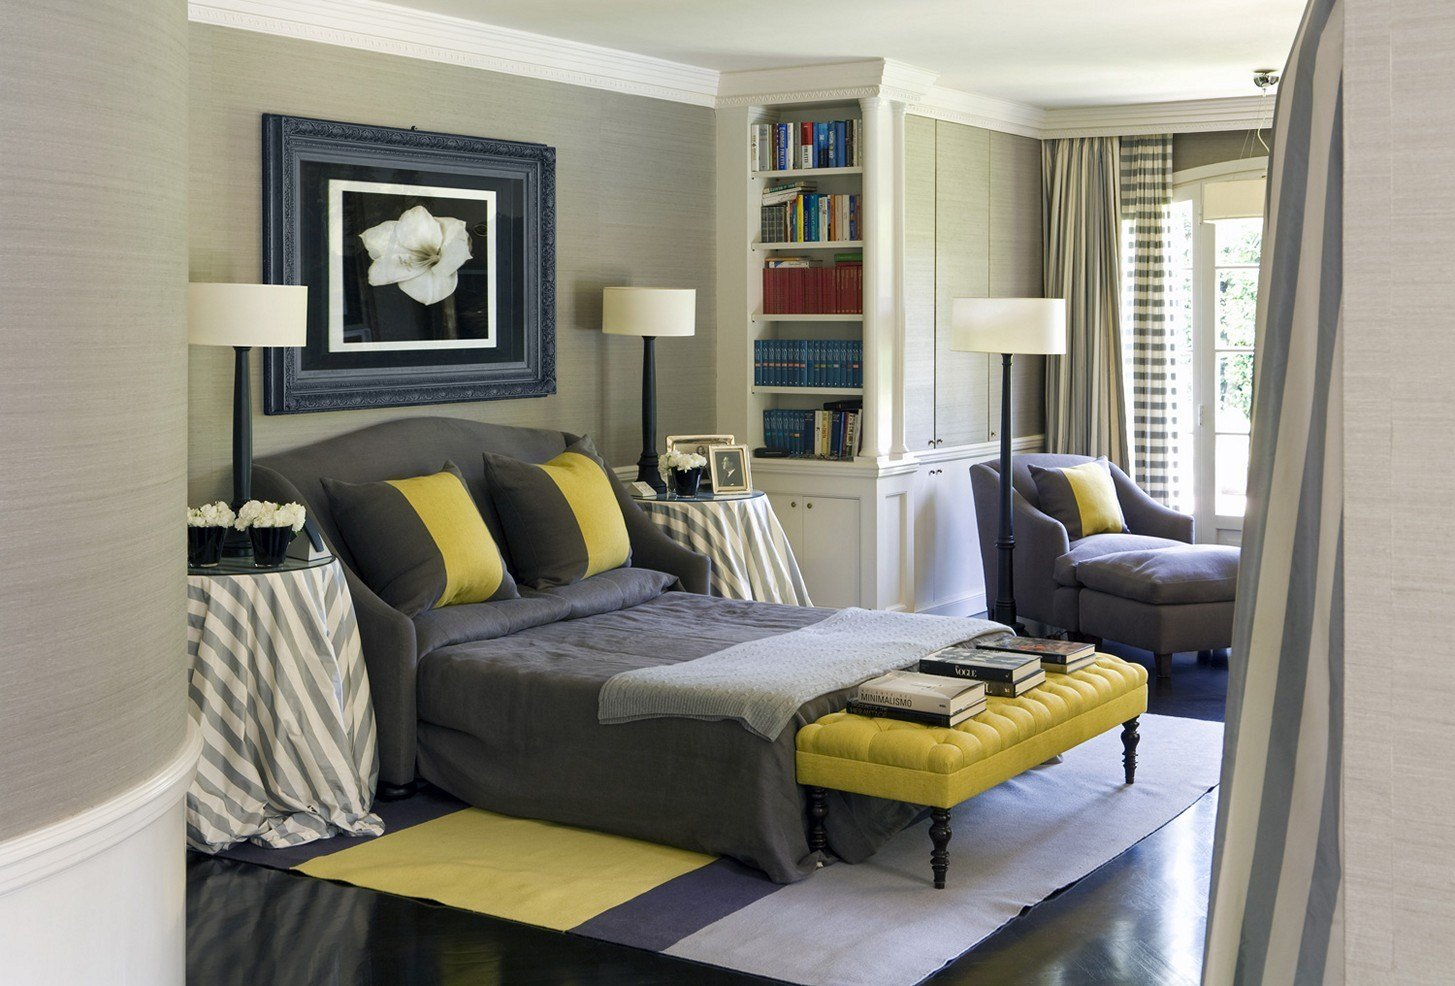 Best Bathroom Decoration Navy And Yellow Decorating Ideas Black With Pictures